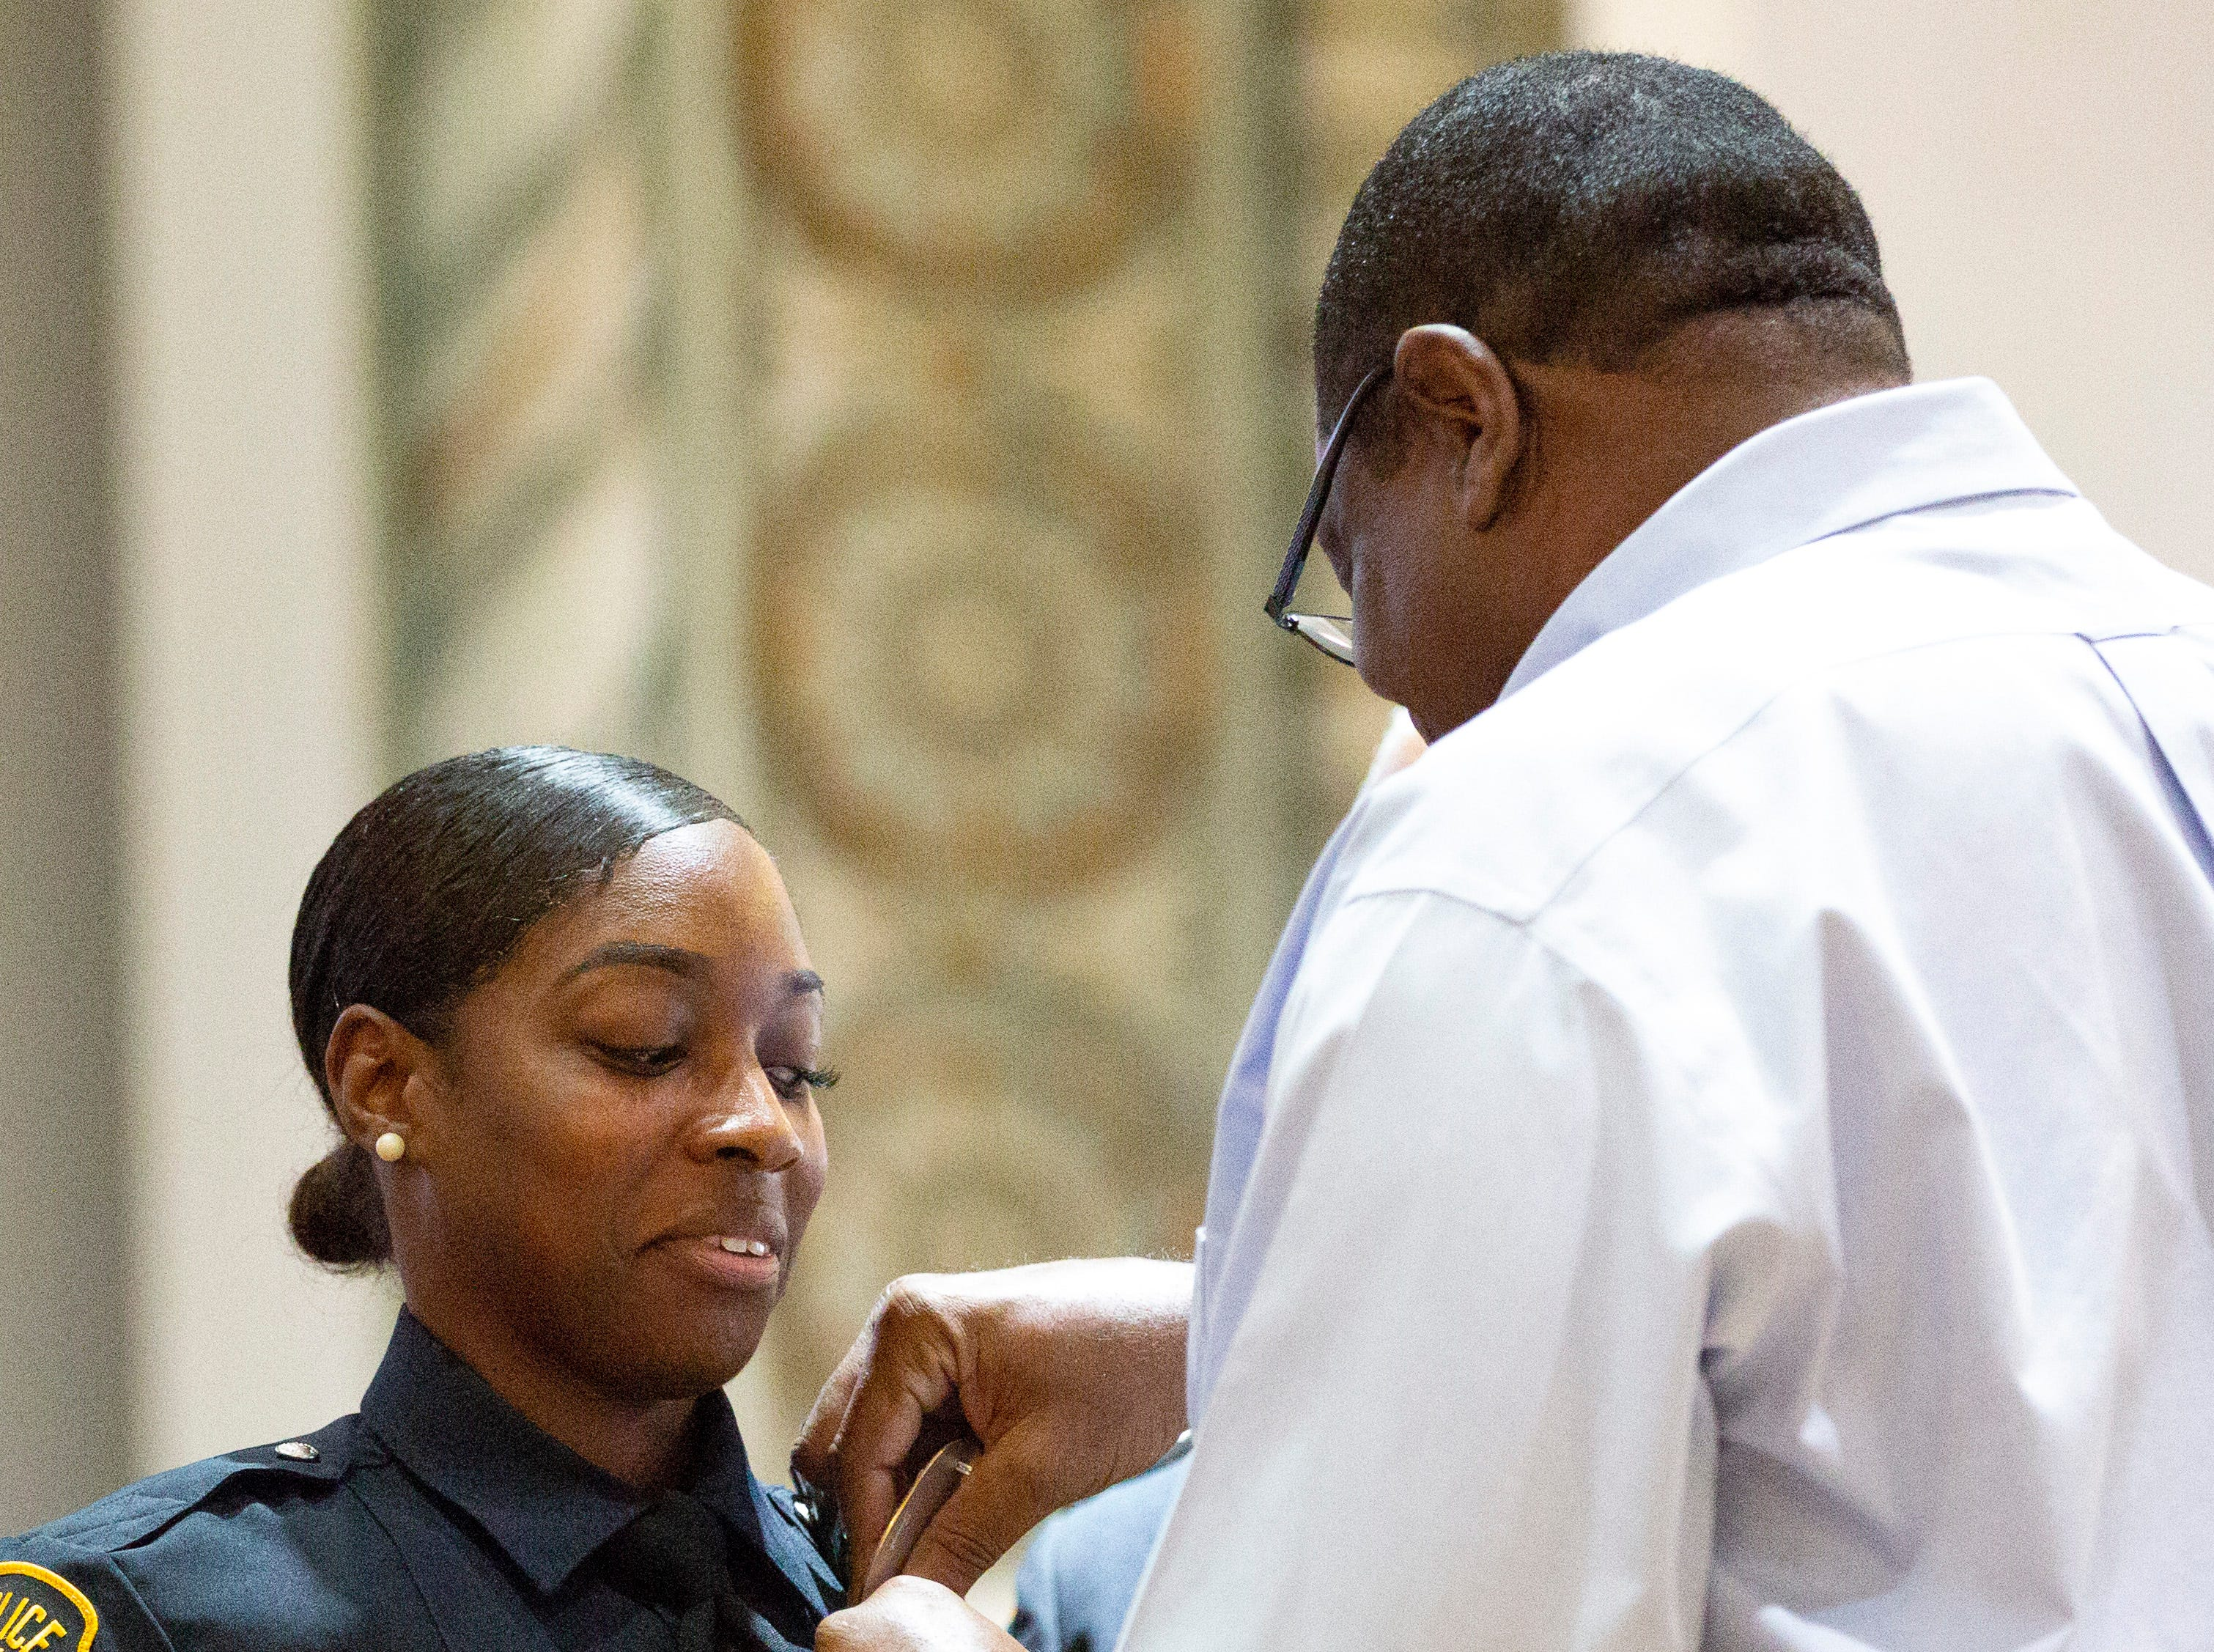 Montgomery police officer Tina Marie Jones watches hesitantly as her father pins her badge on her uniform.